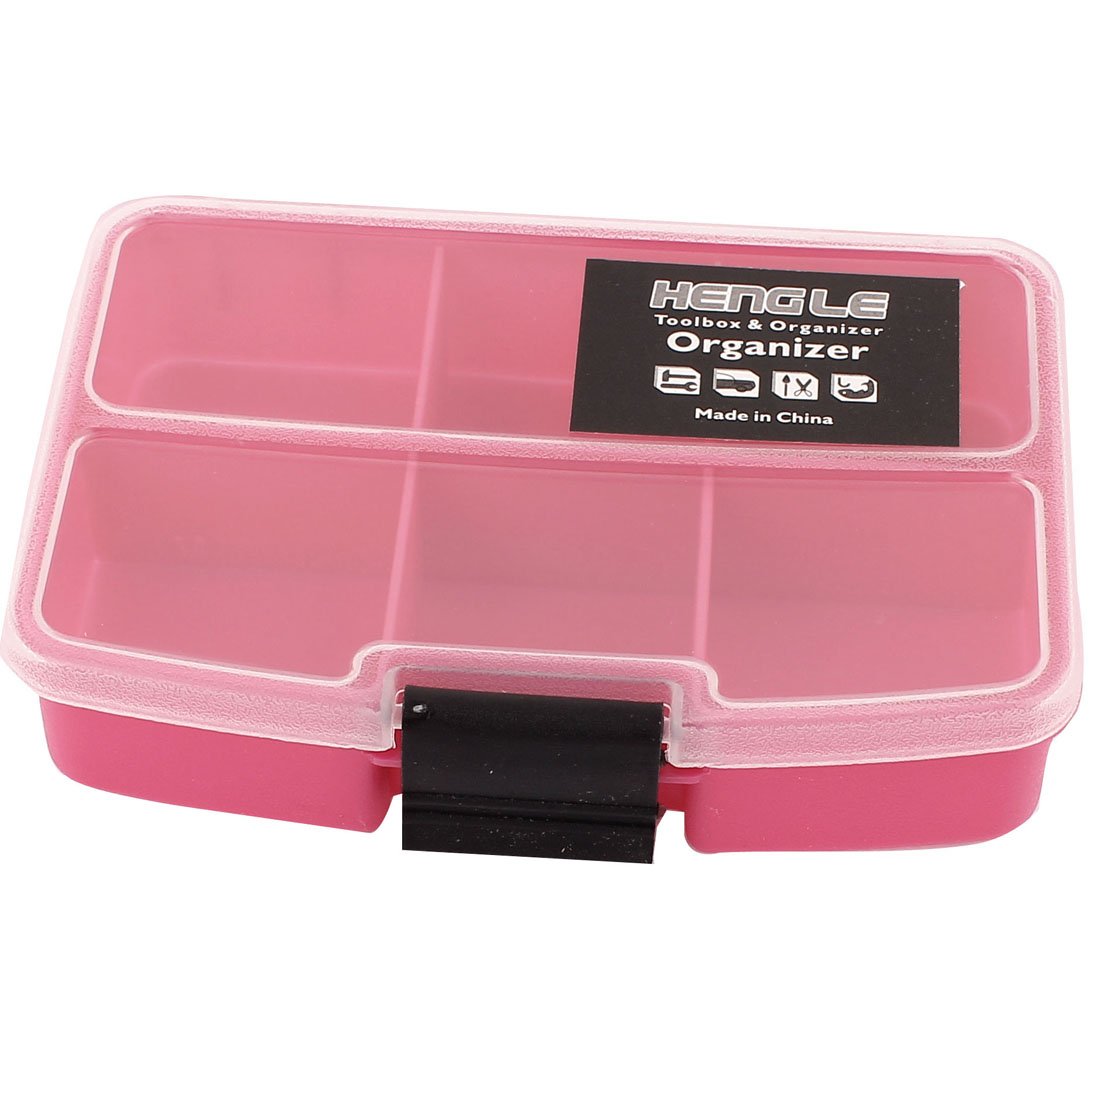 Fishing Tool Crafts Container Organizer Storage Box 6 Compartments Fuchsia